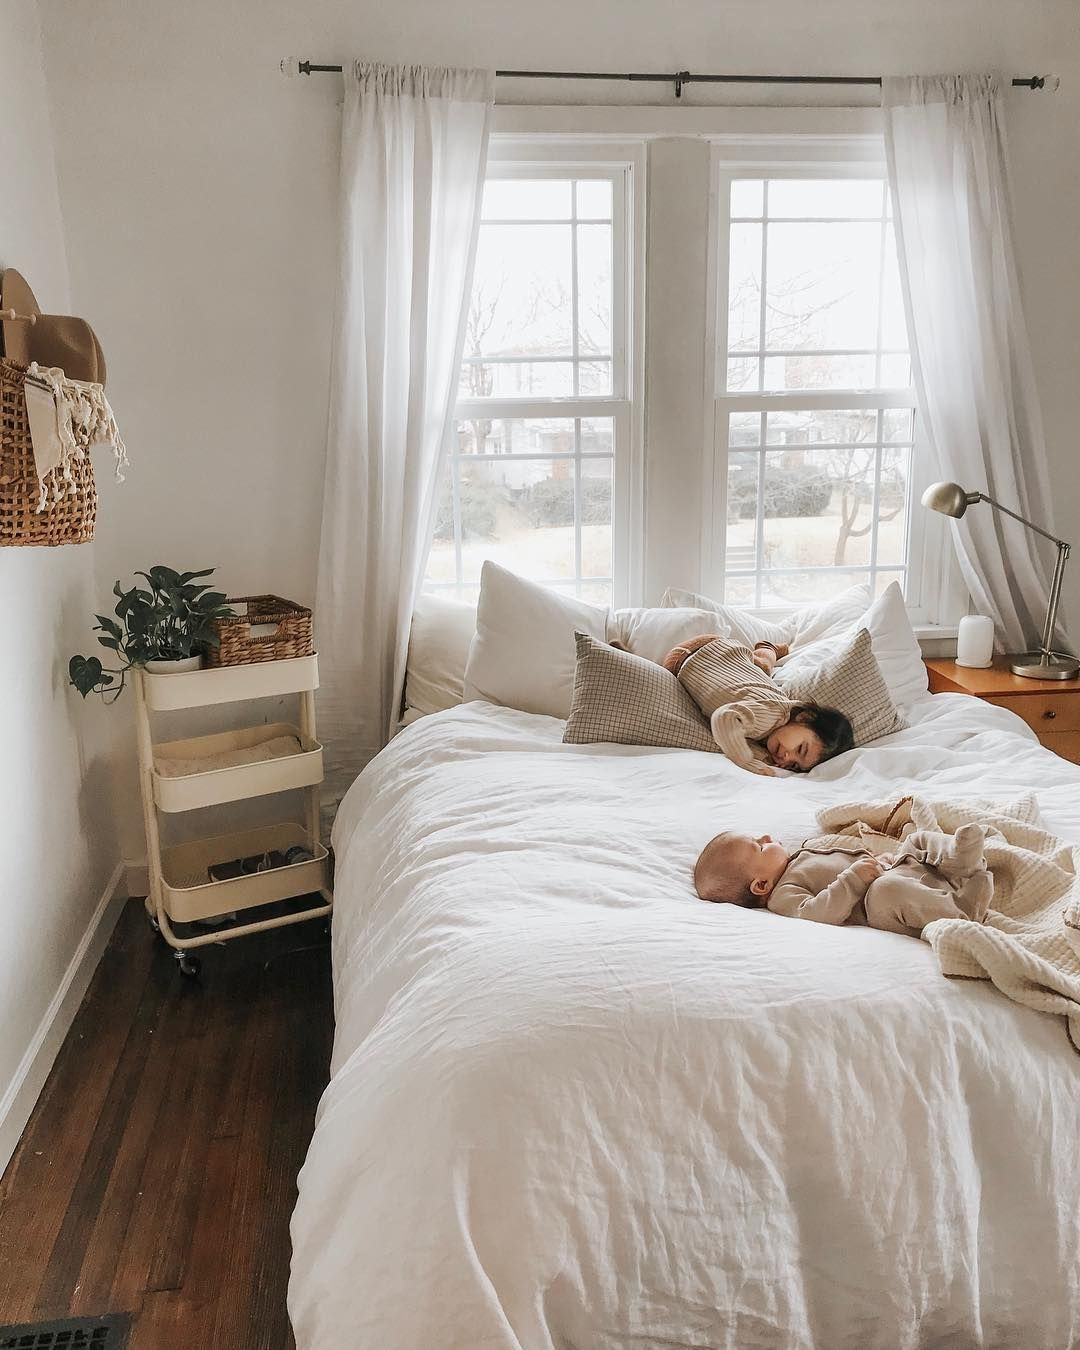 """Elyse N. Dean on Instagram: """"Sorry if you get tired of seeing my bedroom. It's literally where we spend 80% of our day. There's no TV in here so Koven doesn't ask for a…"""" -  pinterest callie ; instagram callie  - #bedroom #Day #Dean #doesnt #elyse #instagram #Koven #linenbedideas #literally #minimalistbedroommen #seeing #sorry #spend #tired"""